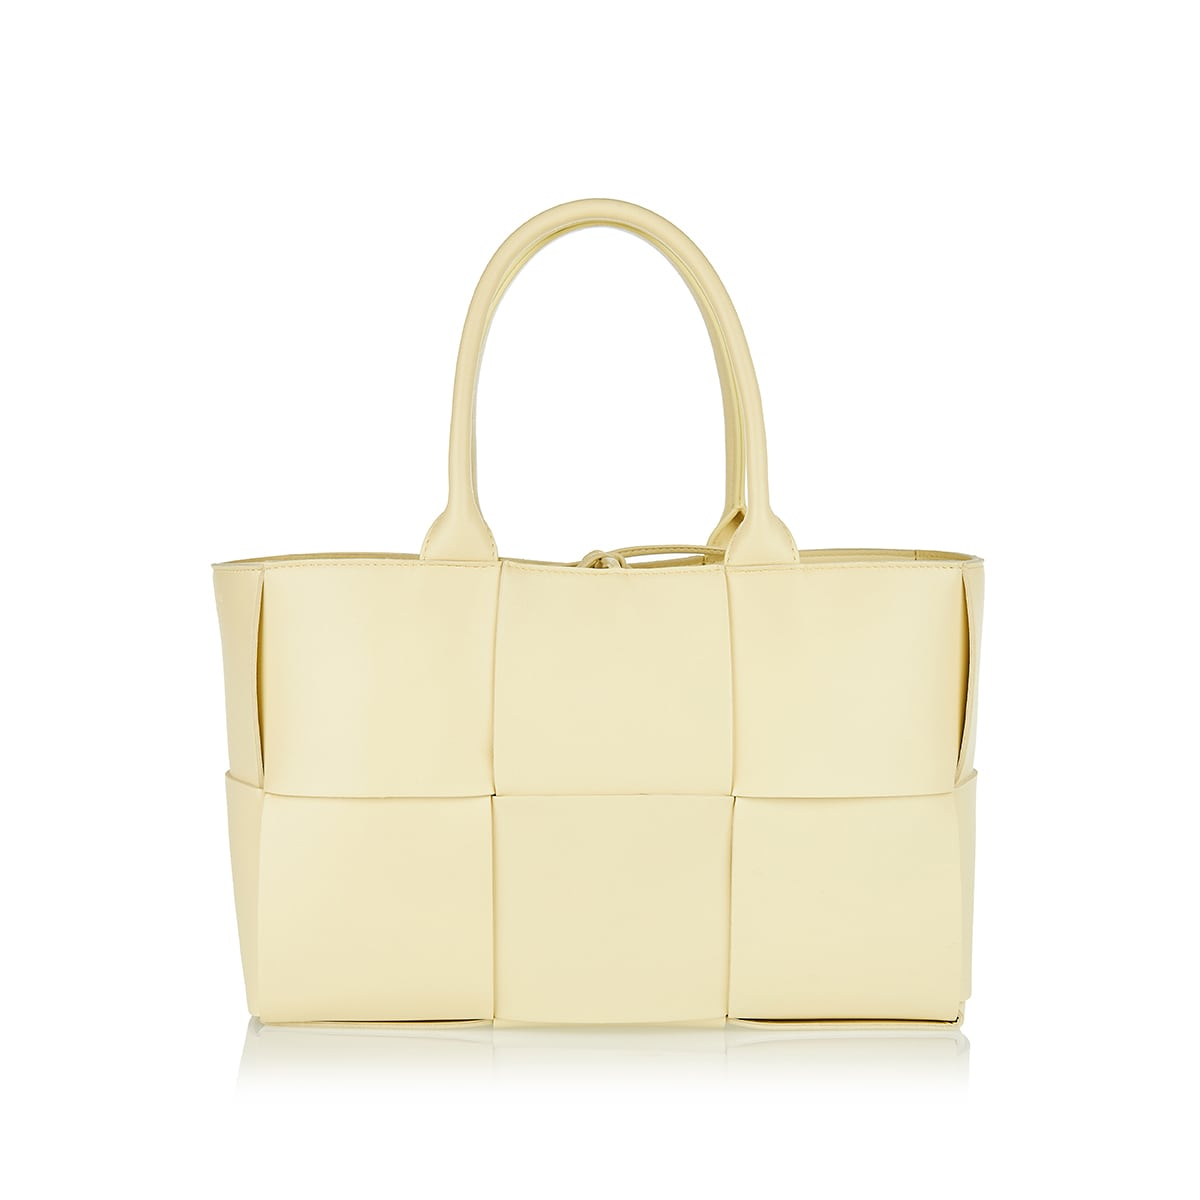 The Arco small leather tote